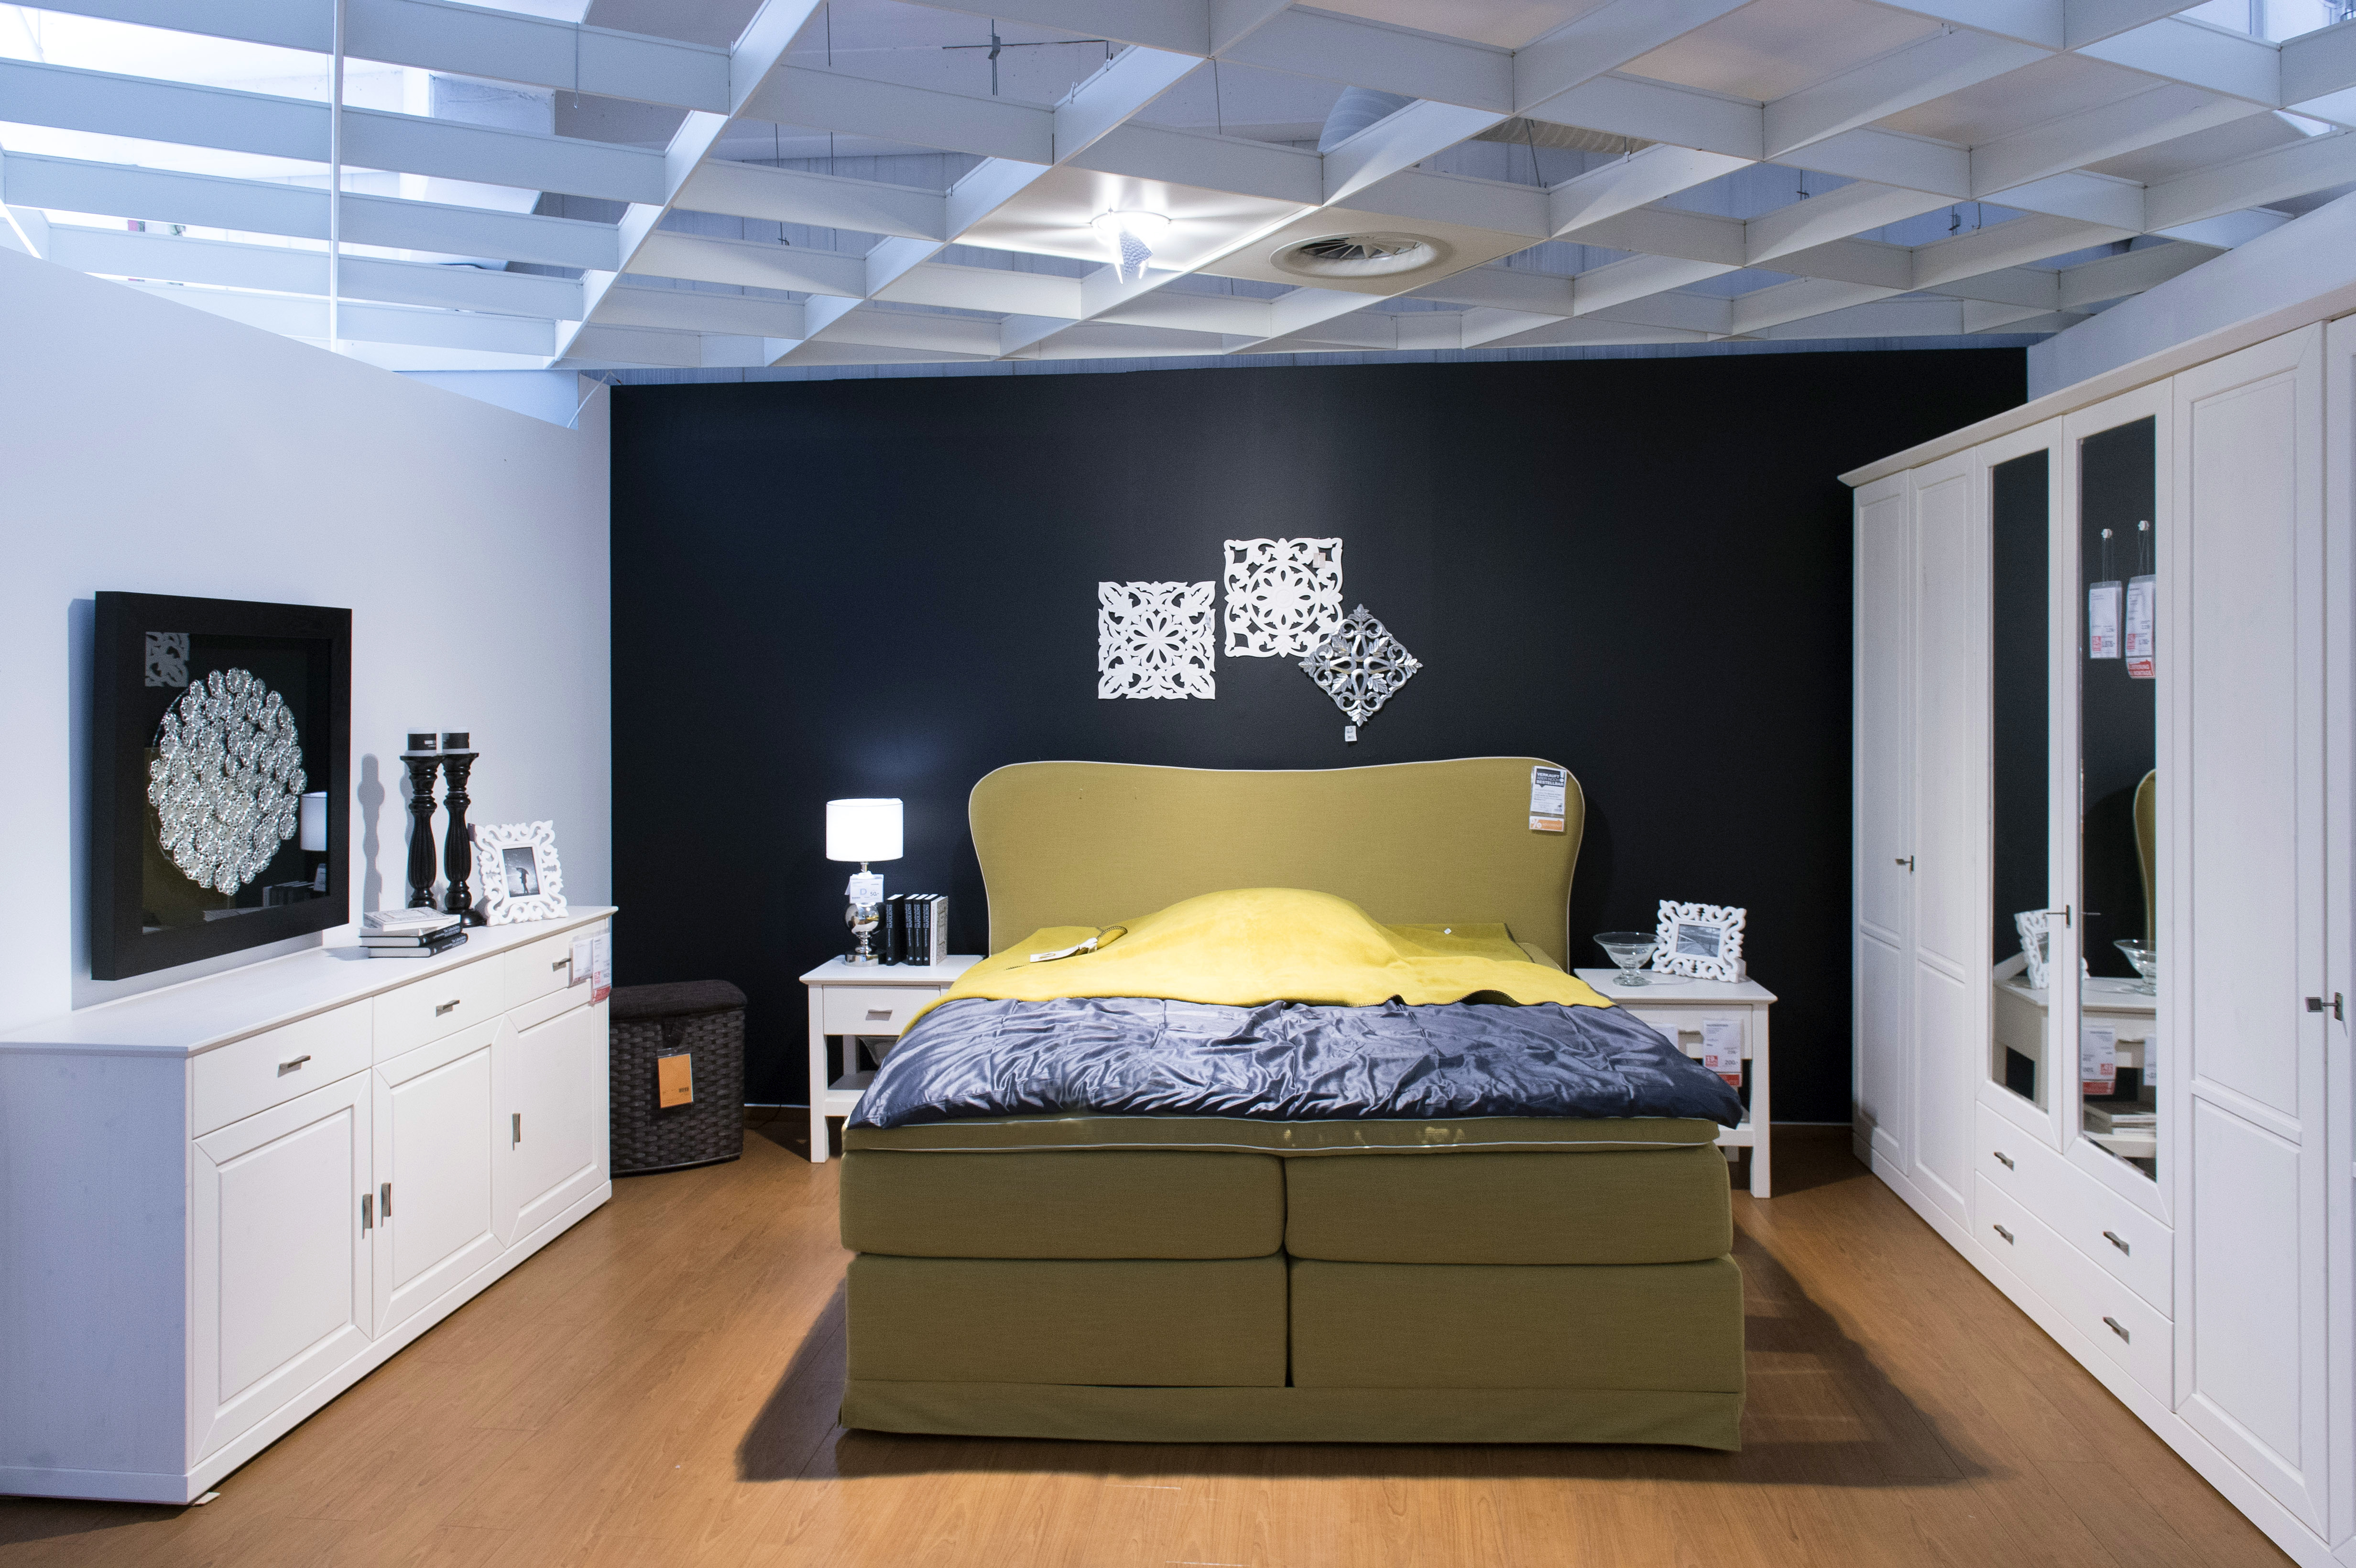 xxxlutz zimmermann freudenberg in 57258 freudenberg. Black Bedroom Furniture Sets. Home Design Ideas